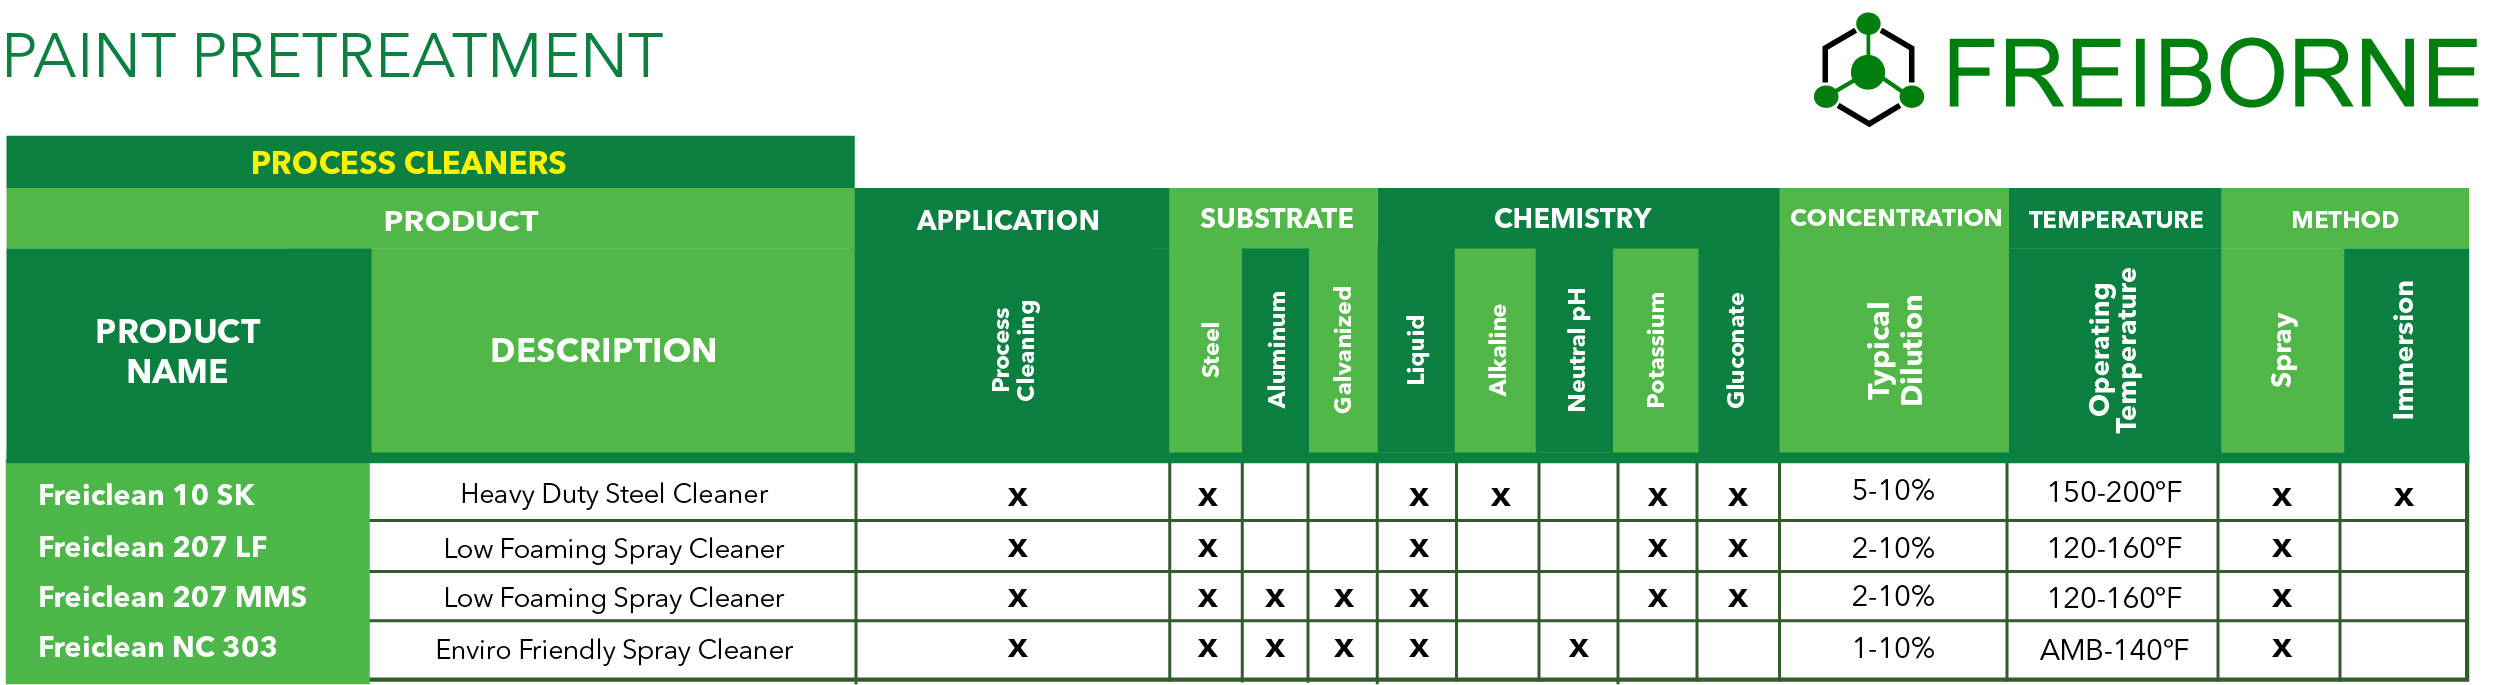 Paint Pretreatment Process Cleaners